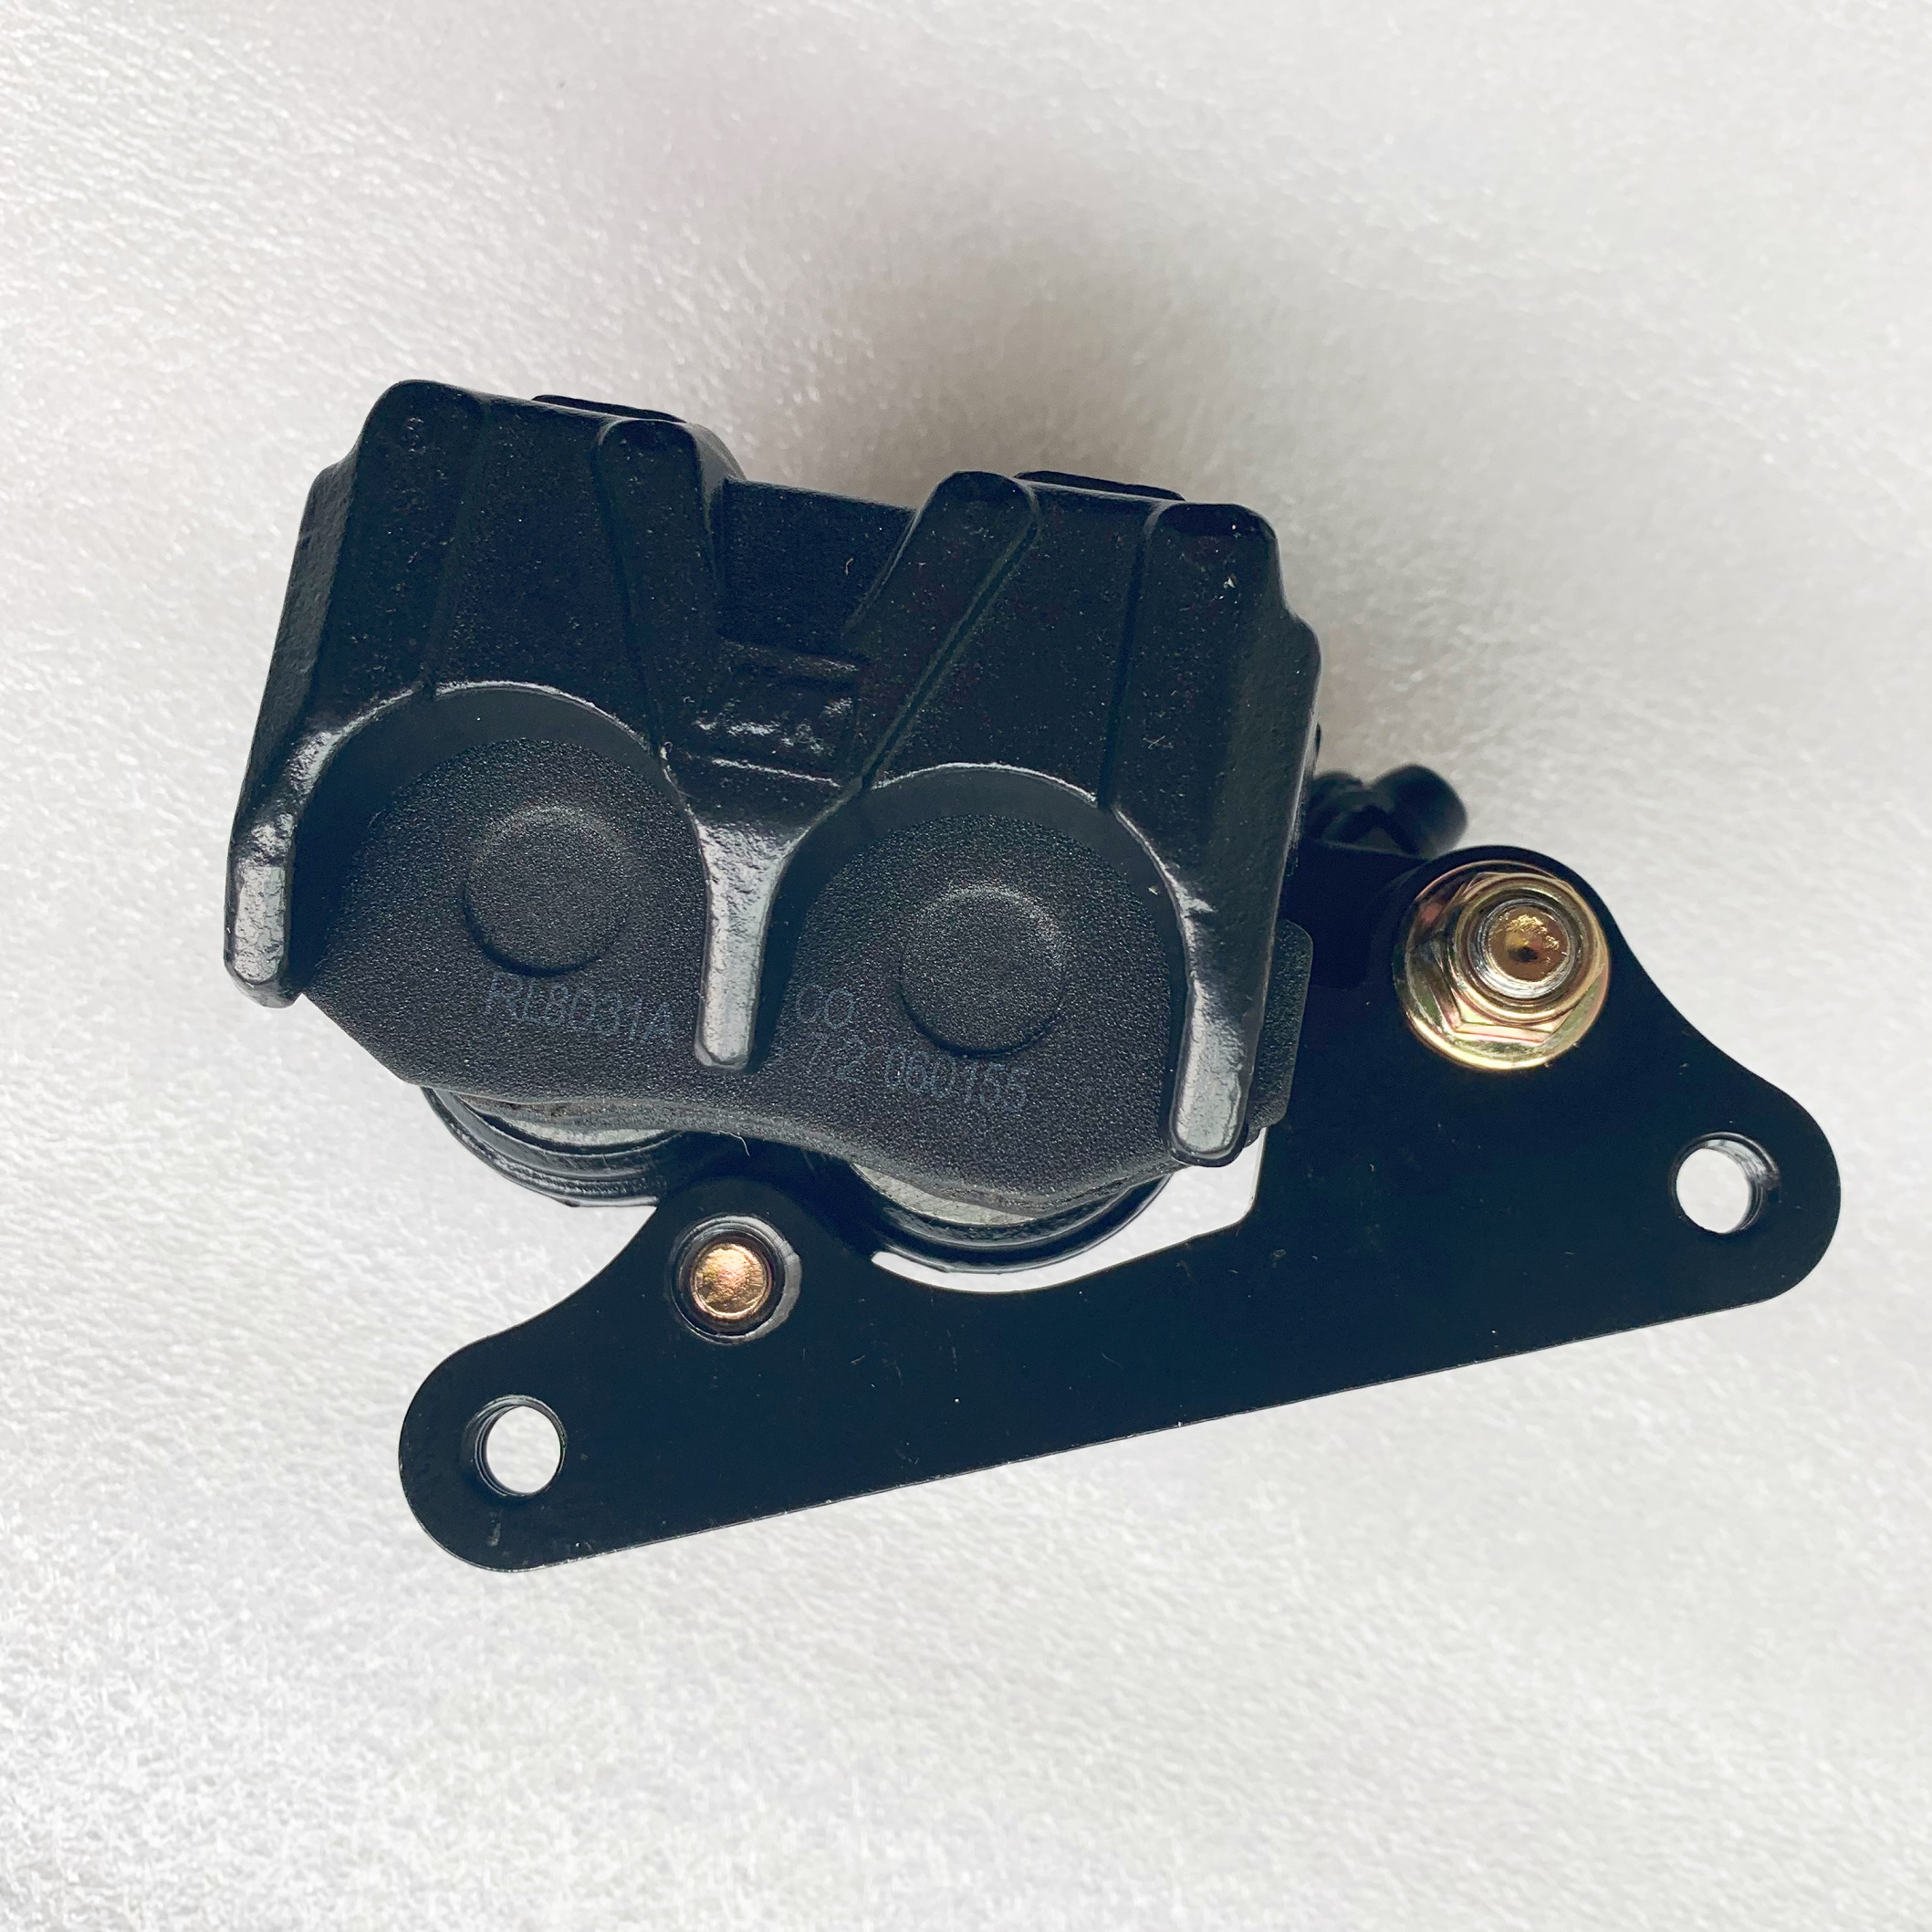 Atv Parts & Accessories Back To Search Resultsautomobiles & Motorcycles 2019 New Style 142mm Perfromance Gy6 Clutch Drive Sheave 125cc 150cc 152qmi 157qmj Kinroad Kazuma Taotao Baotian Jonway Scooter Atv Buggy Parts Year-End Bargain Sale